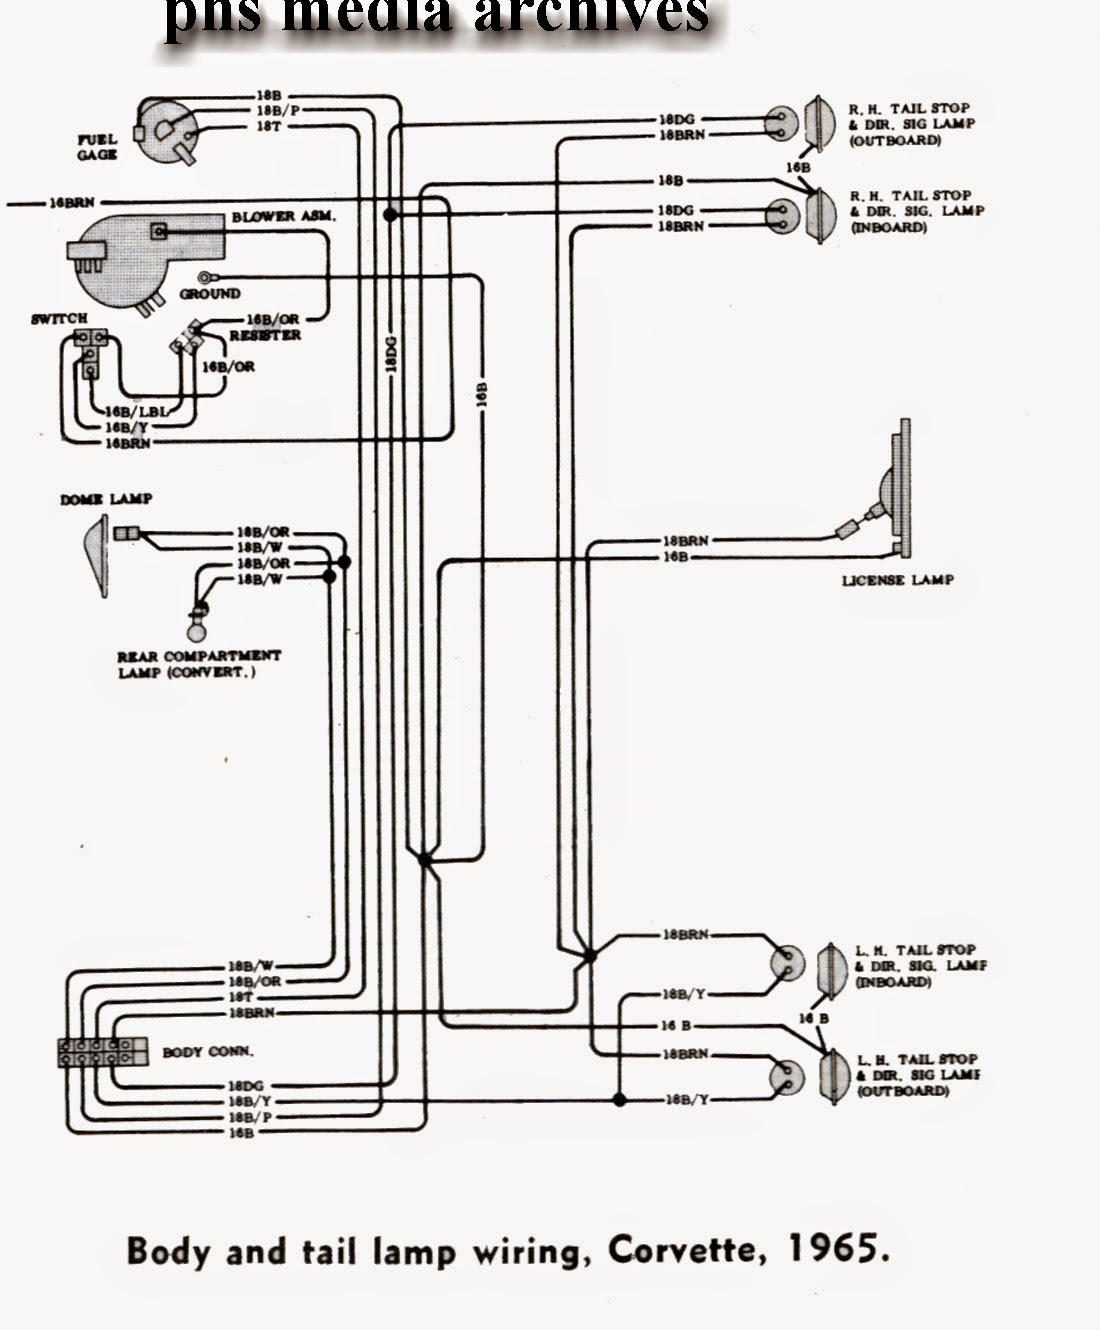 tech series 1965 chevrolet corvette wiring diagrams engine fuse rh  phscollectorcarworld blogspot com 1965 Corvette Wiring Harness 1965 Corvette  Wiring ...